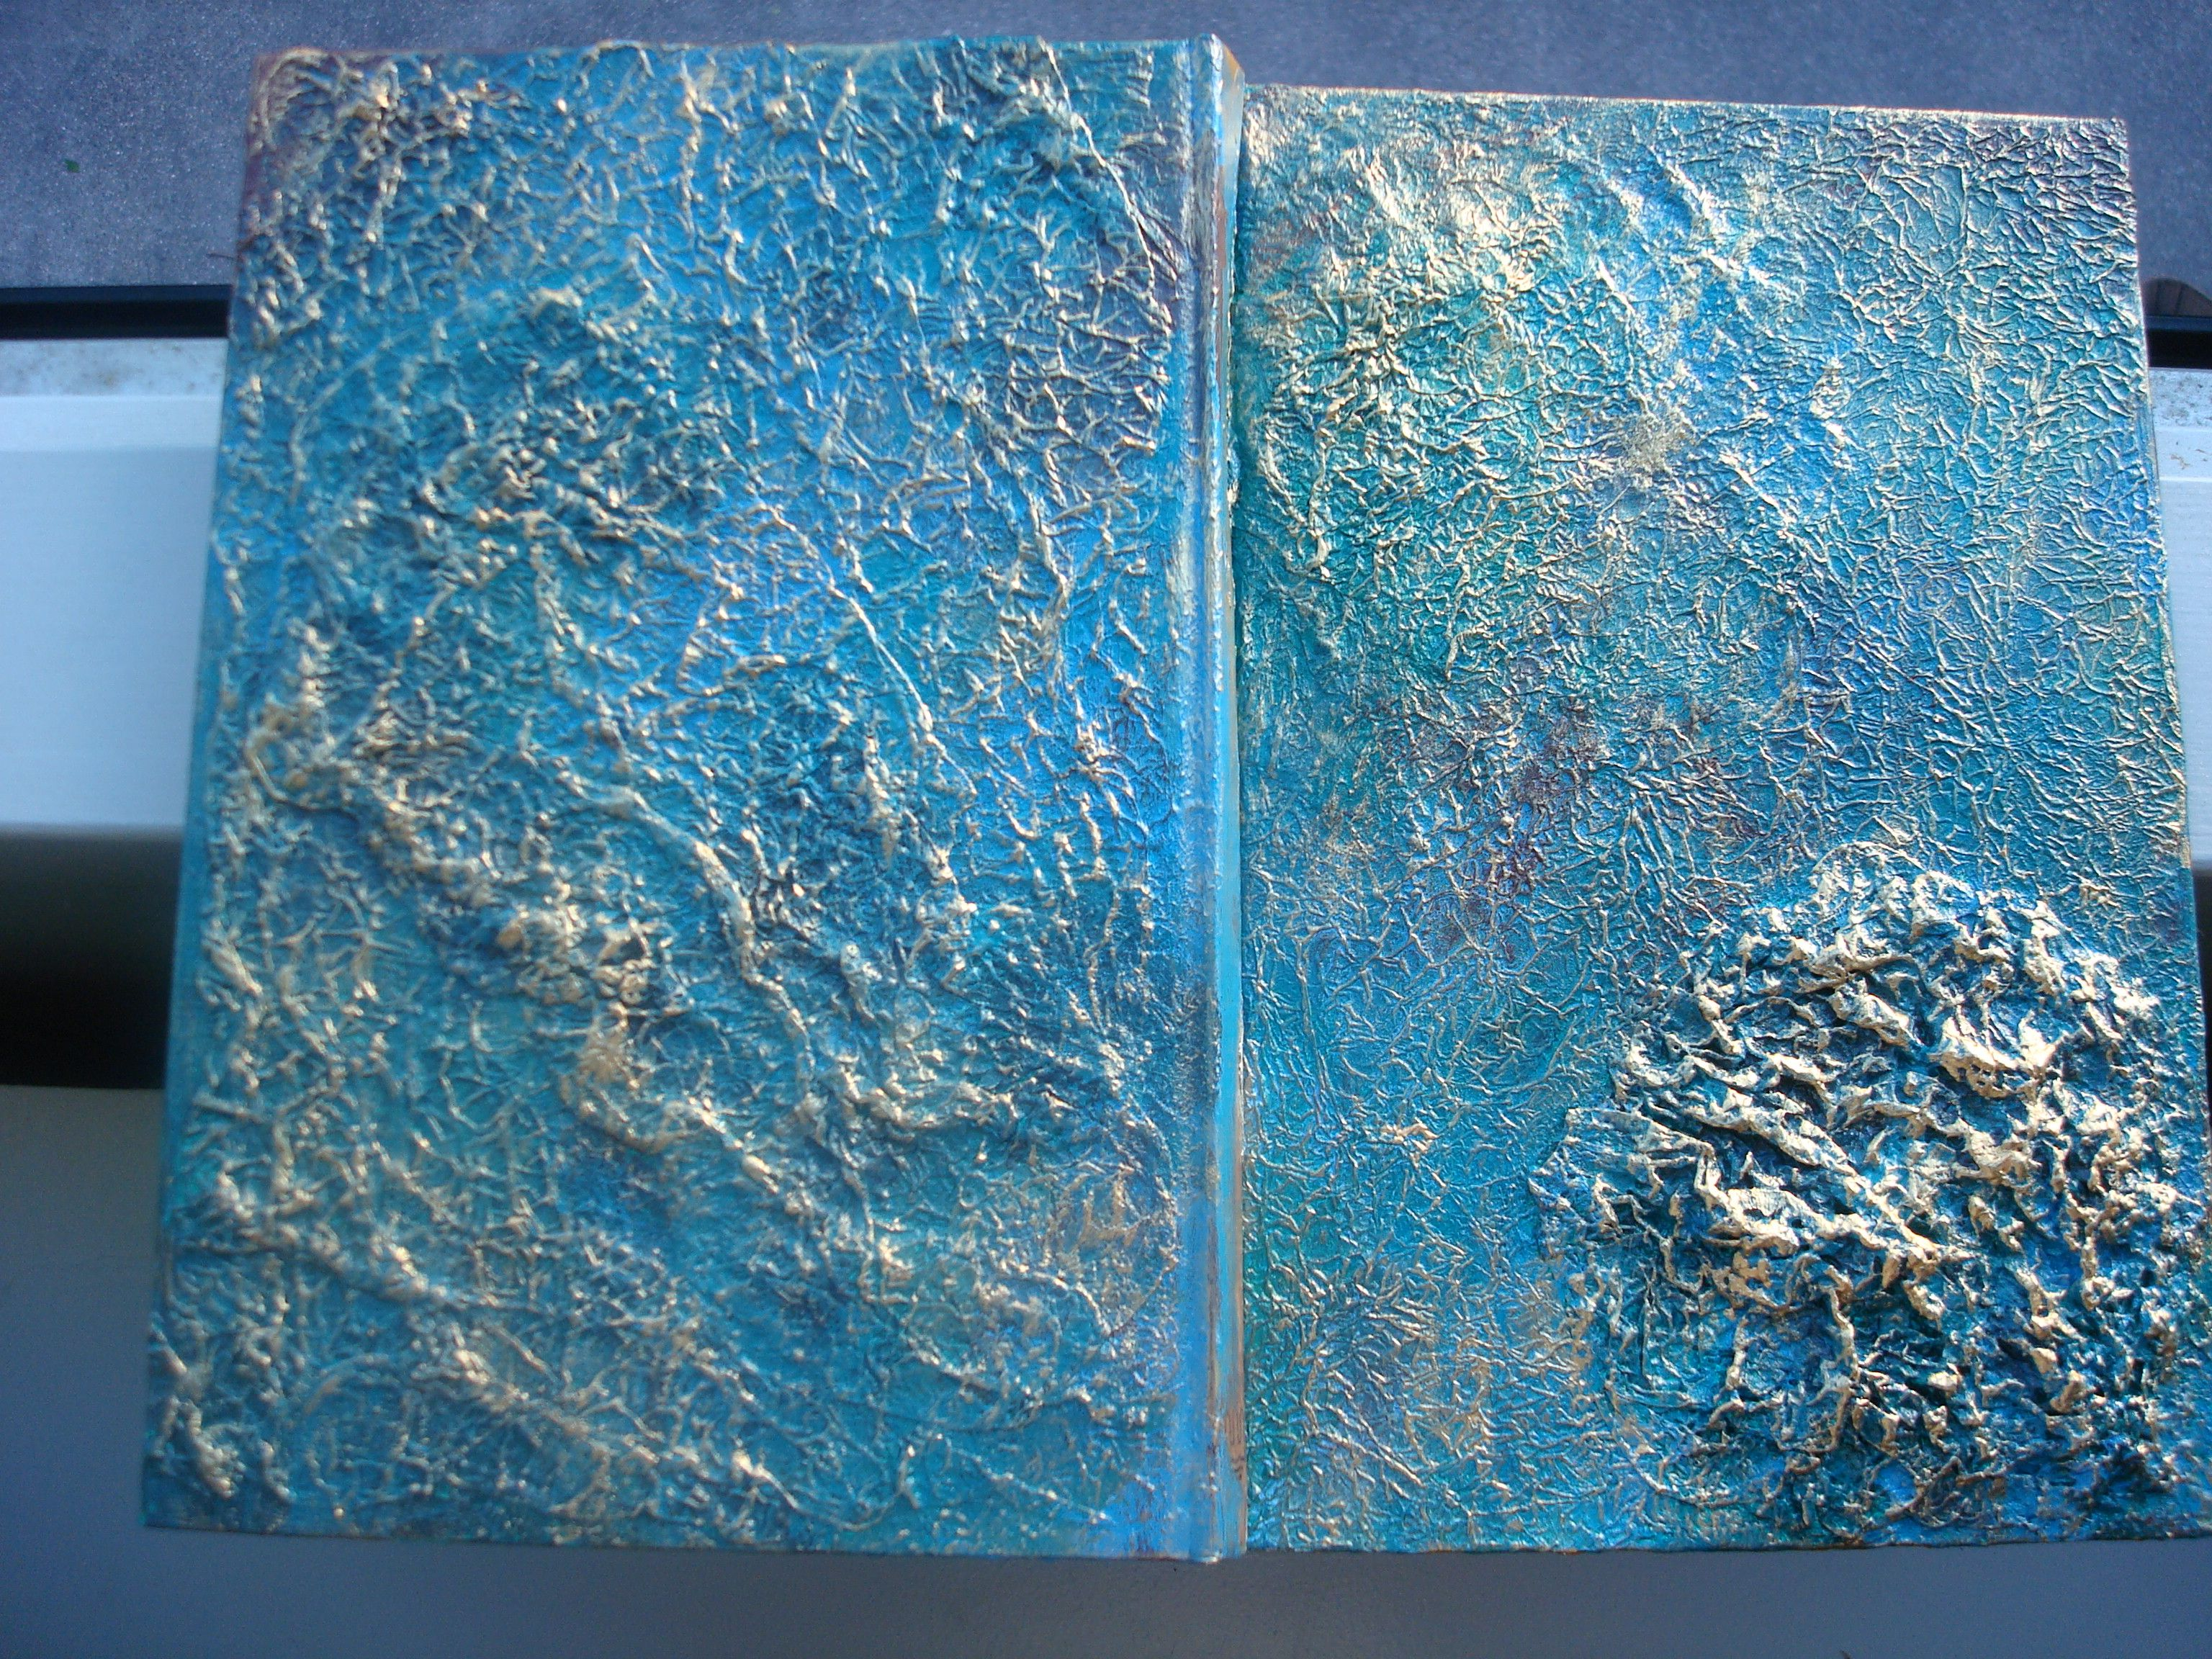 Texture With Aluminum Underneath Shows Acrylic But Can Figure Out How To Adapt For Elementary Great Sensory Aut